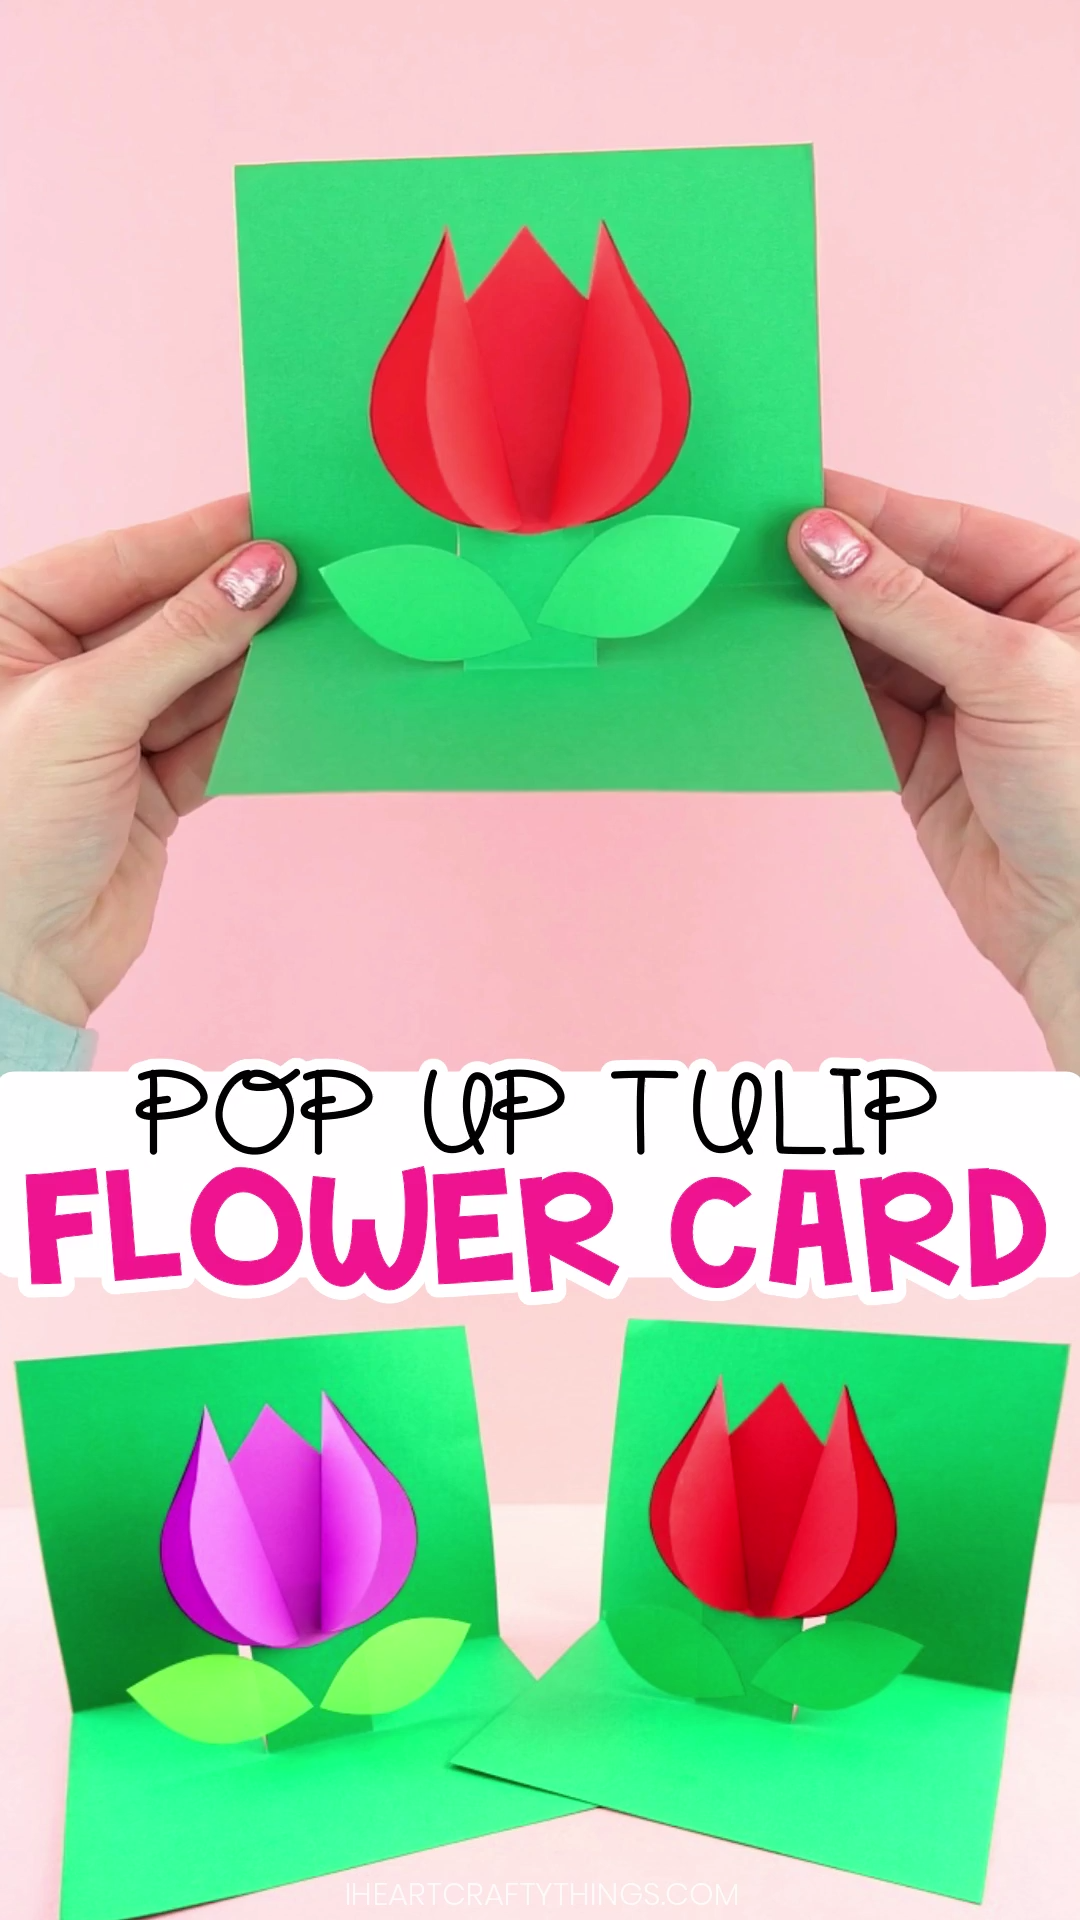 How to Make a Pop Up Flower Card #craft